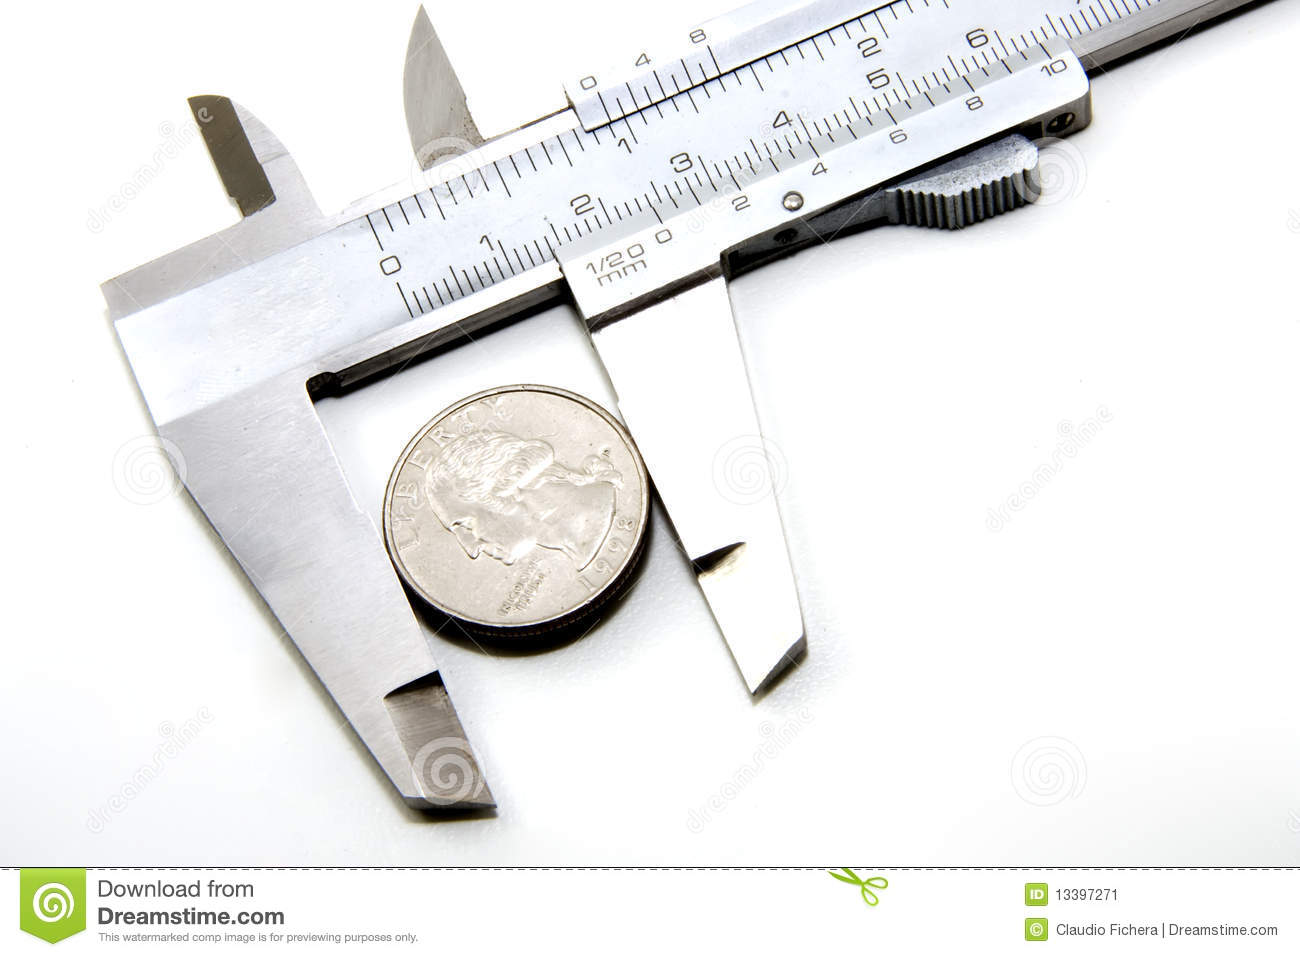 25 Cents In A Caliper  The Concept Of The Value Of 25 Cents